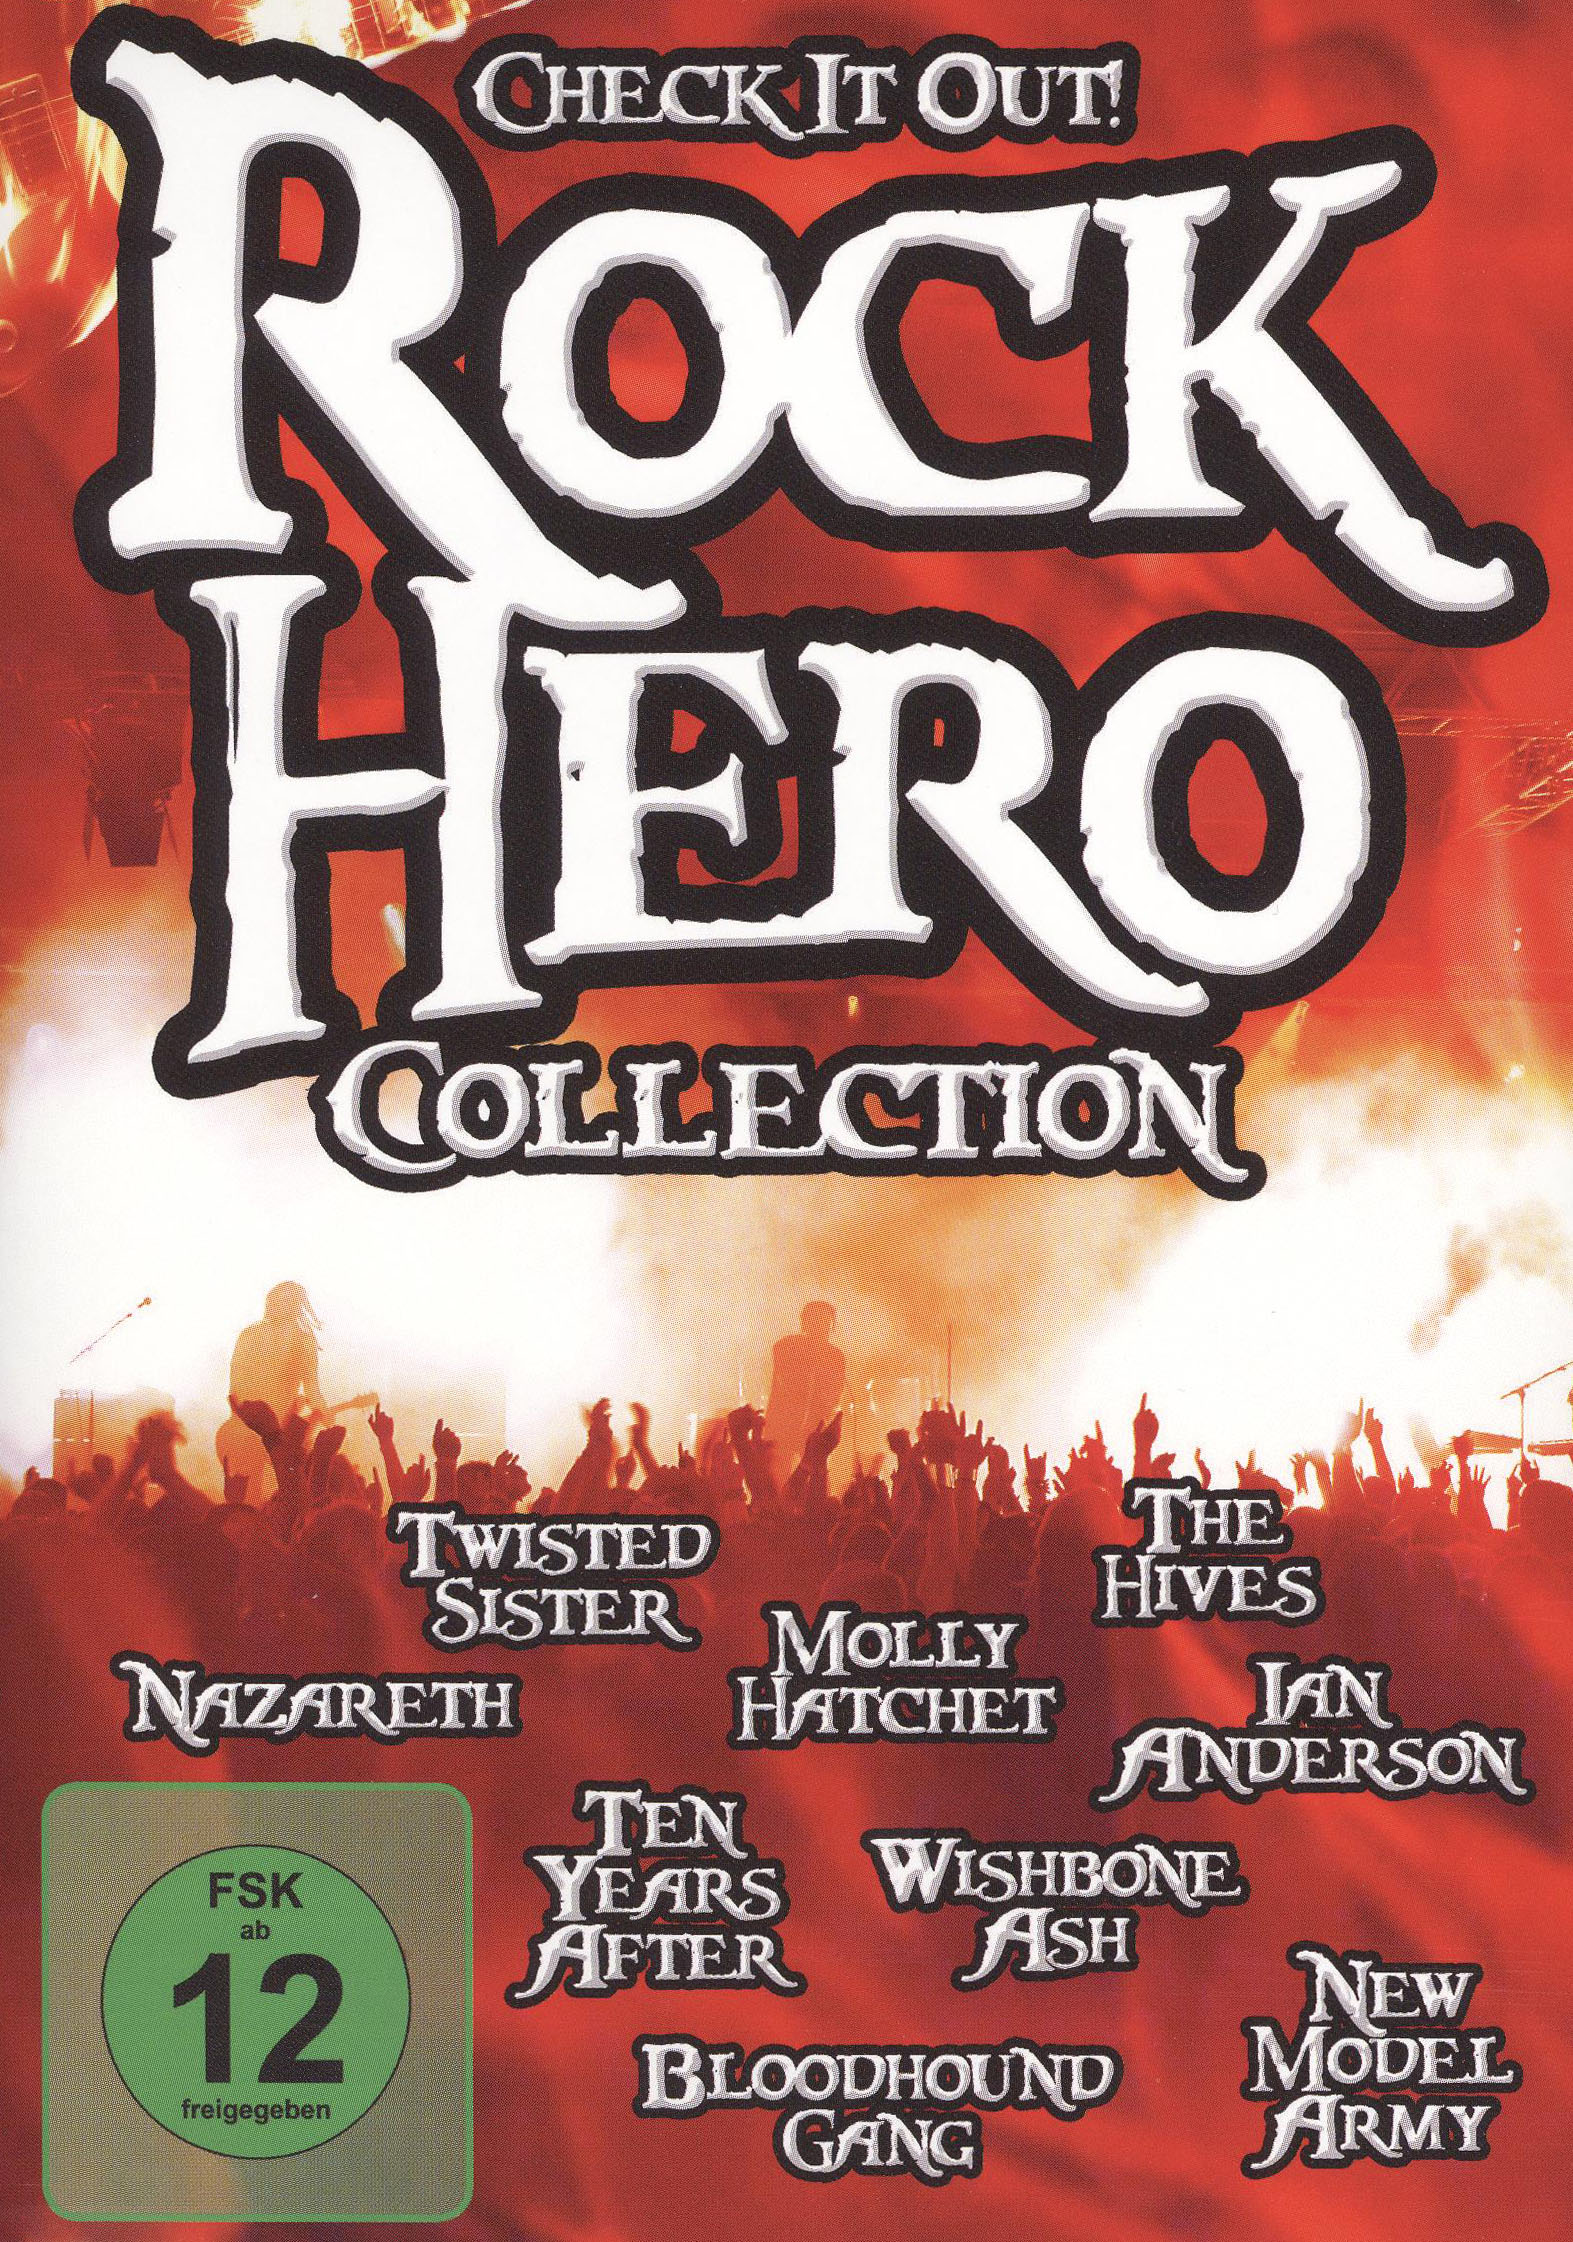 Check It Out! Rock Hero Collection